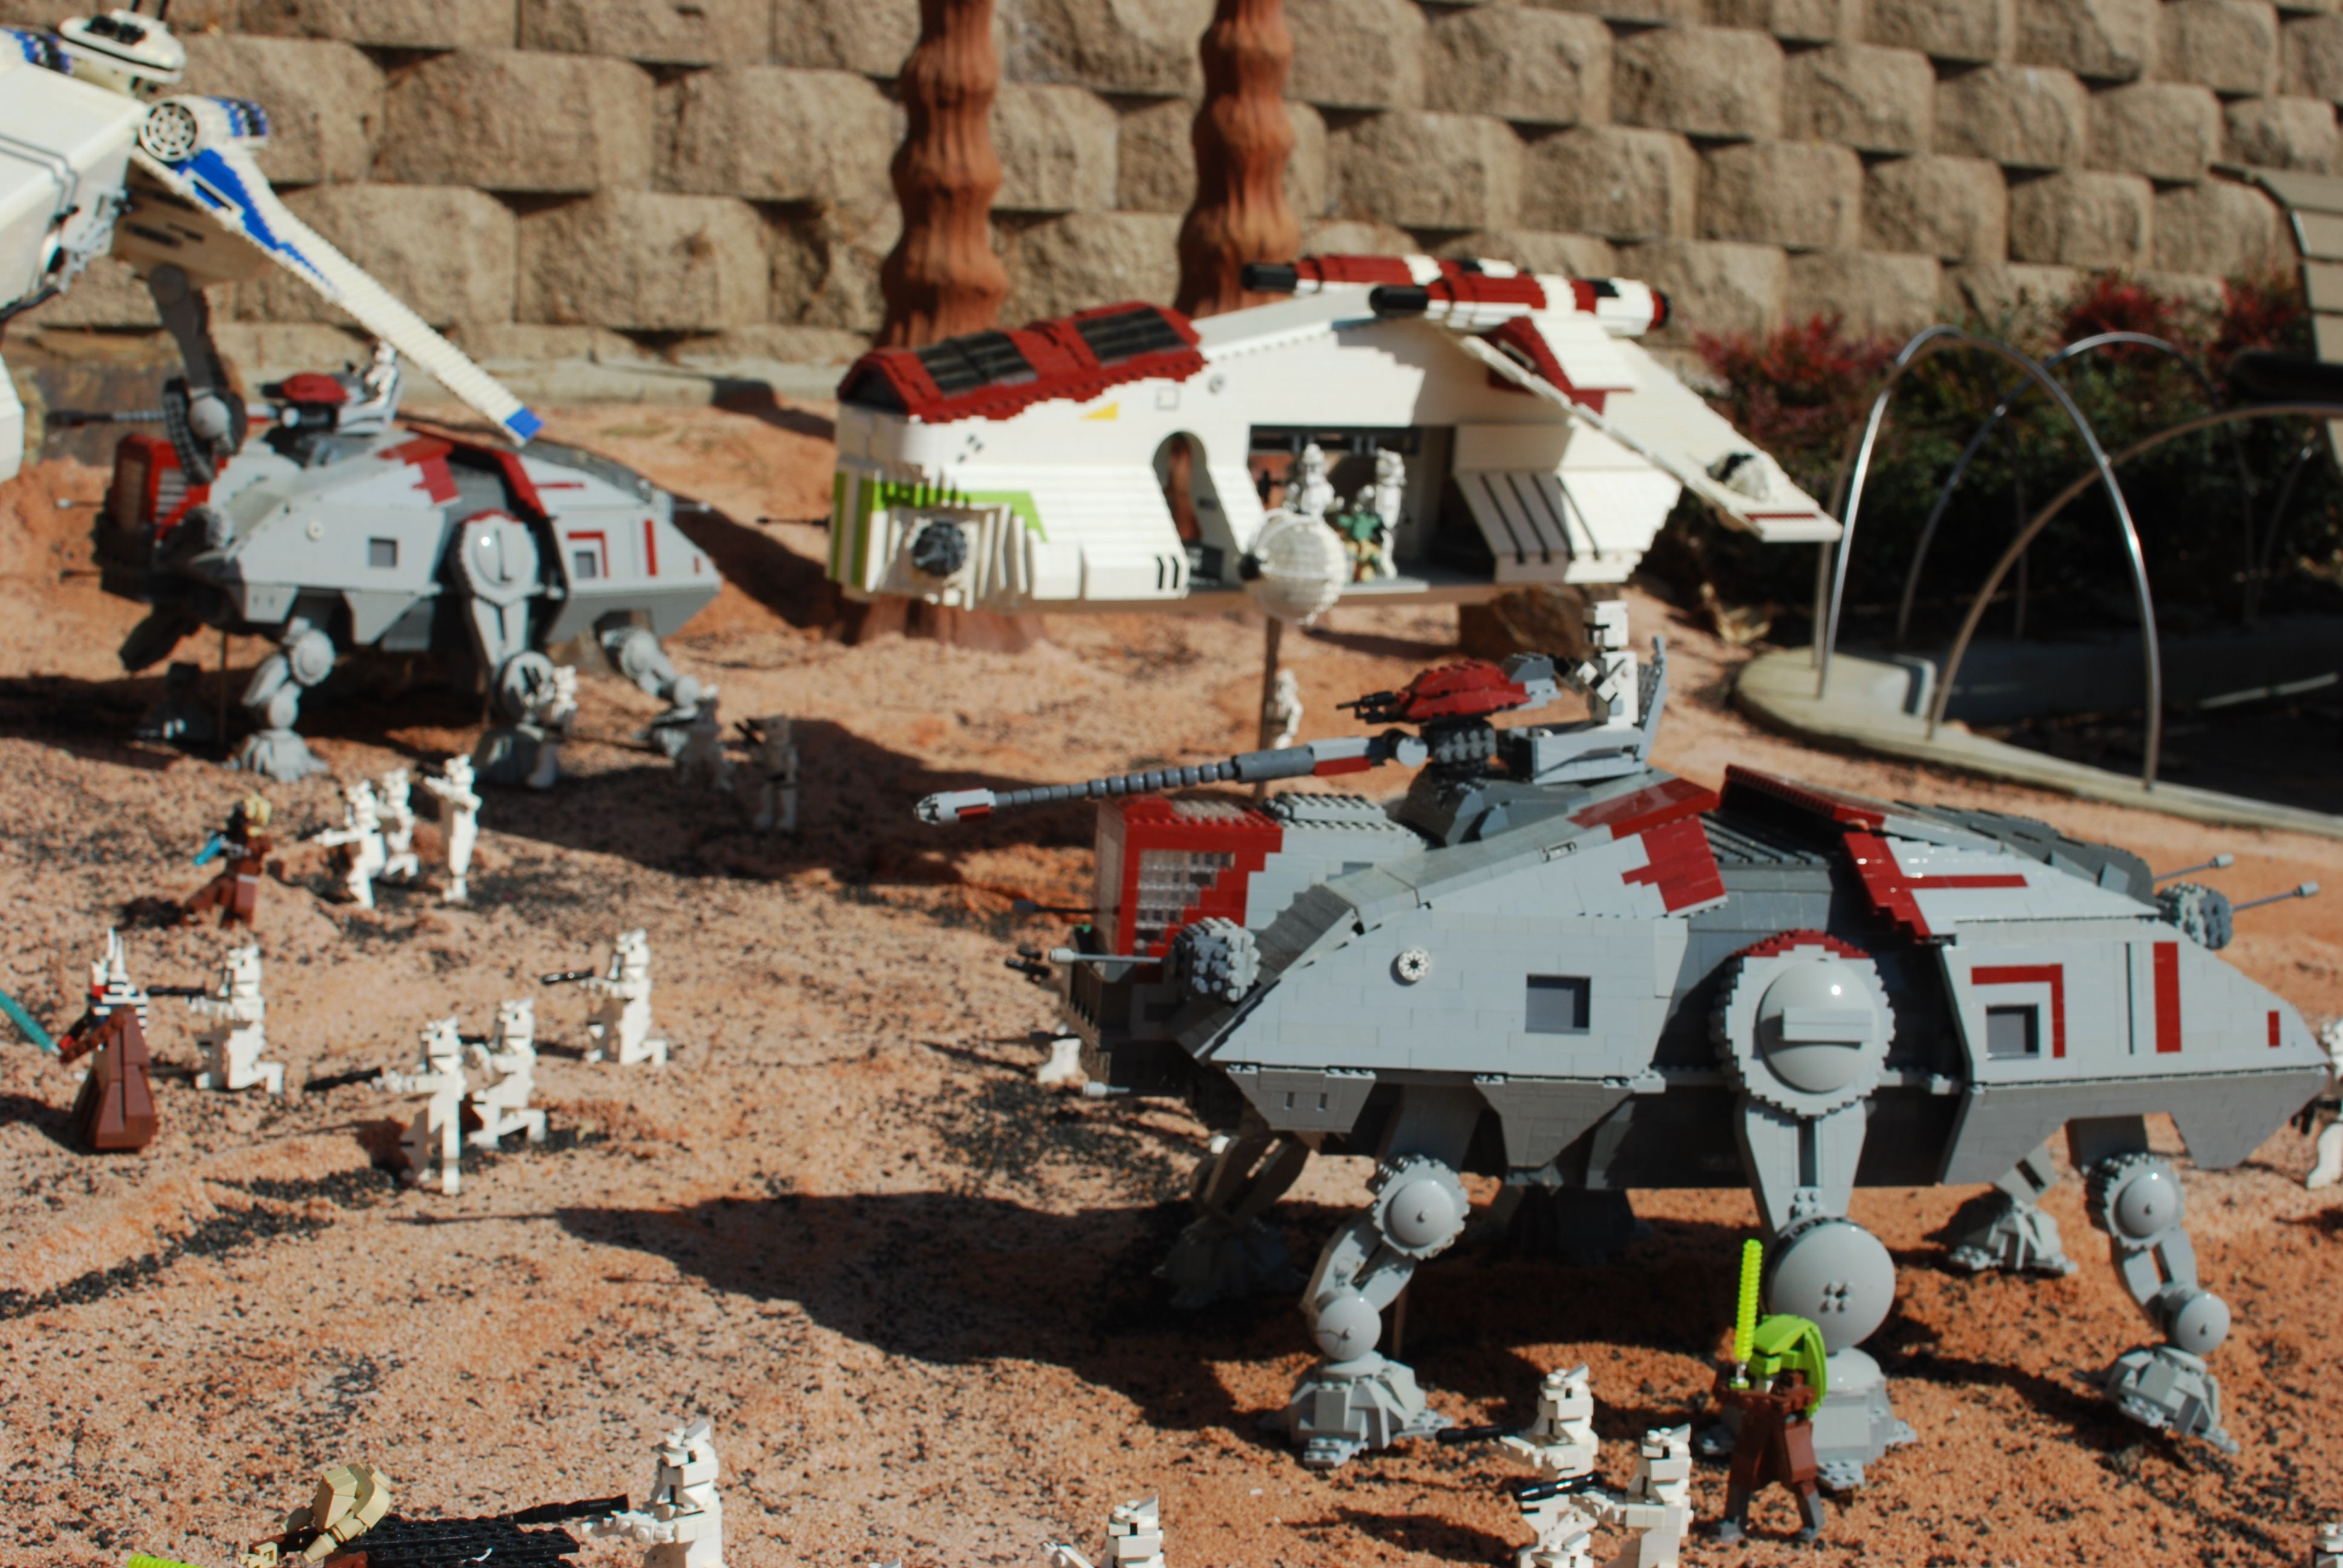 Star Wars Miniland Star Wars Legoland Lego Star Wars Star